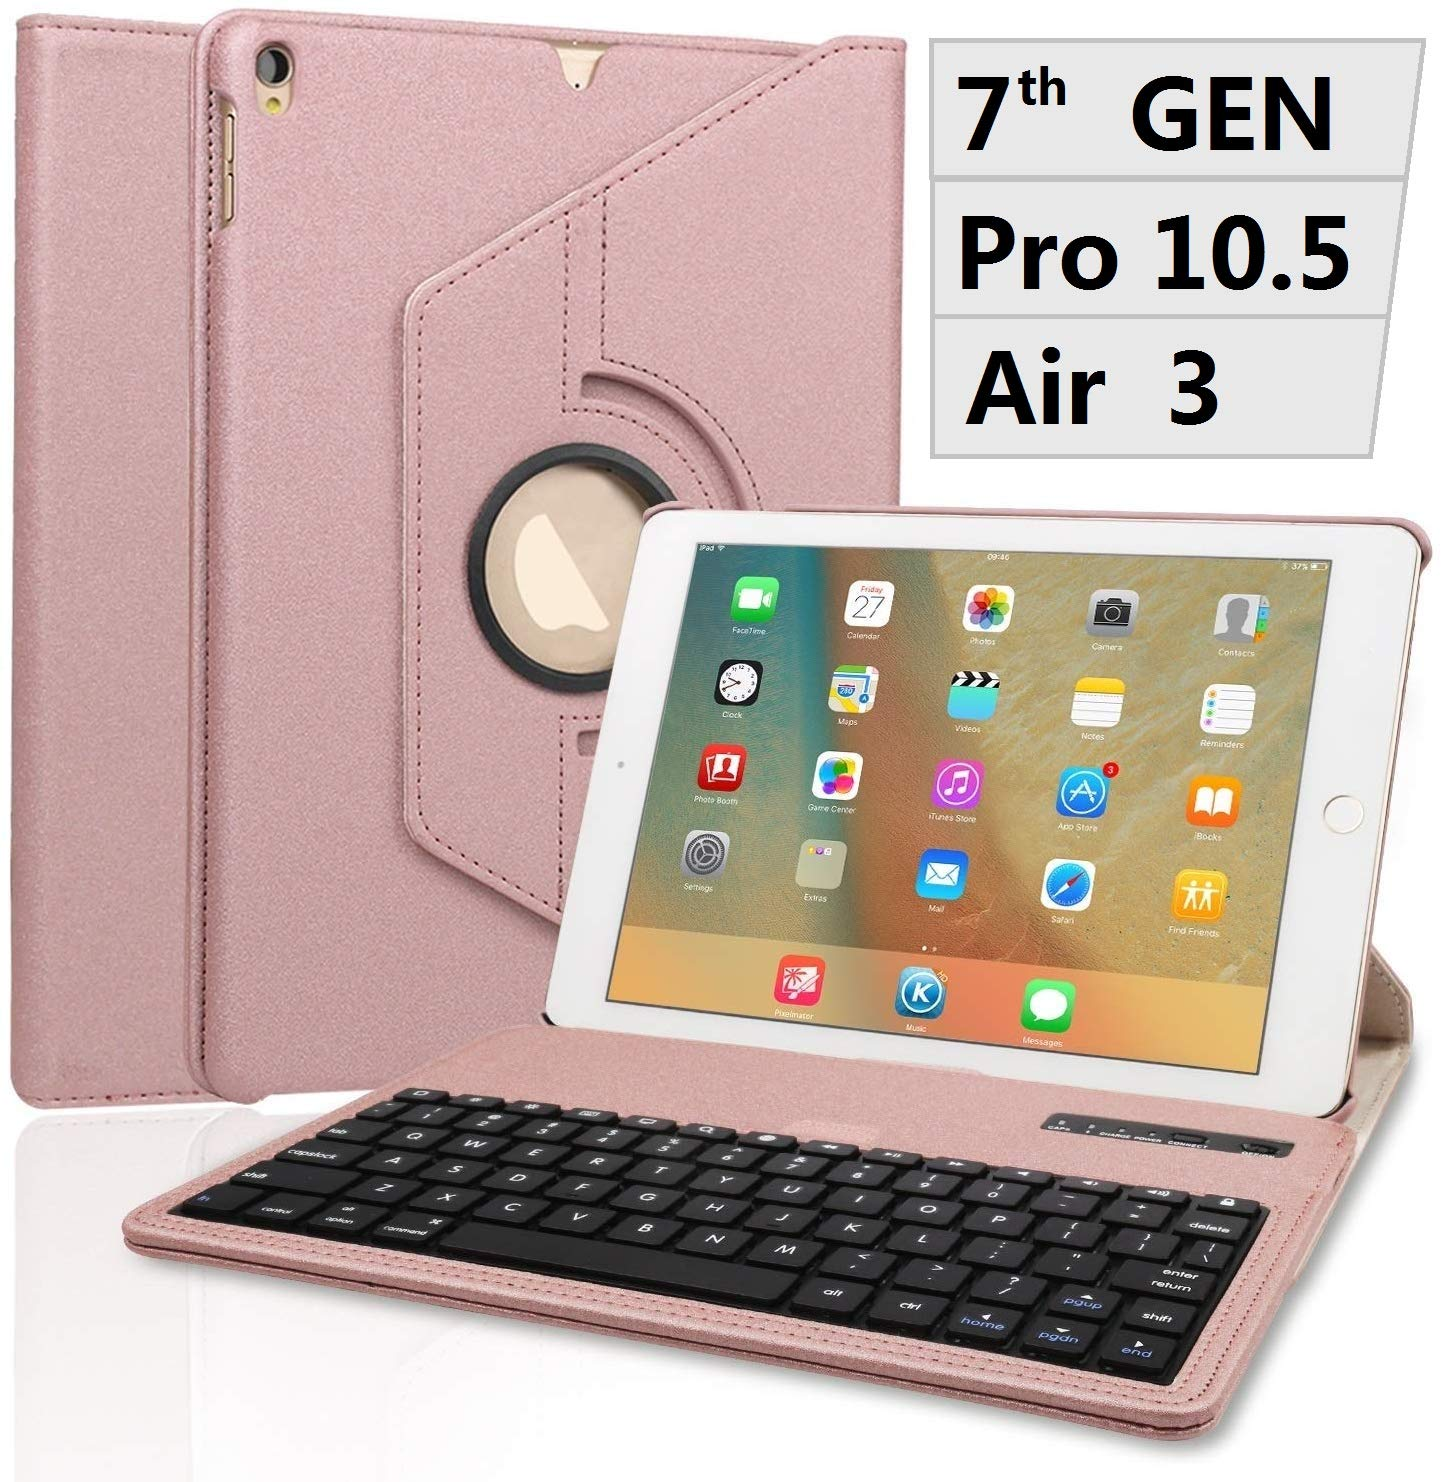 Keyboard Case for iPad 10.2 2019 - Pro 10.5 - Air 3-360 Rotating Case - Detachable Keyboard - PU Leather Stand - iPad 7th Generation Keyboard Case, (Rose Gold, 10.2inch)